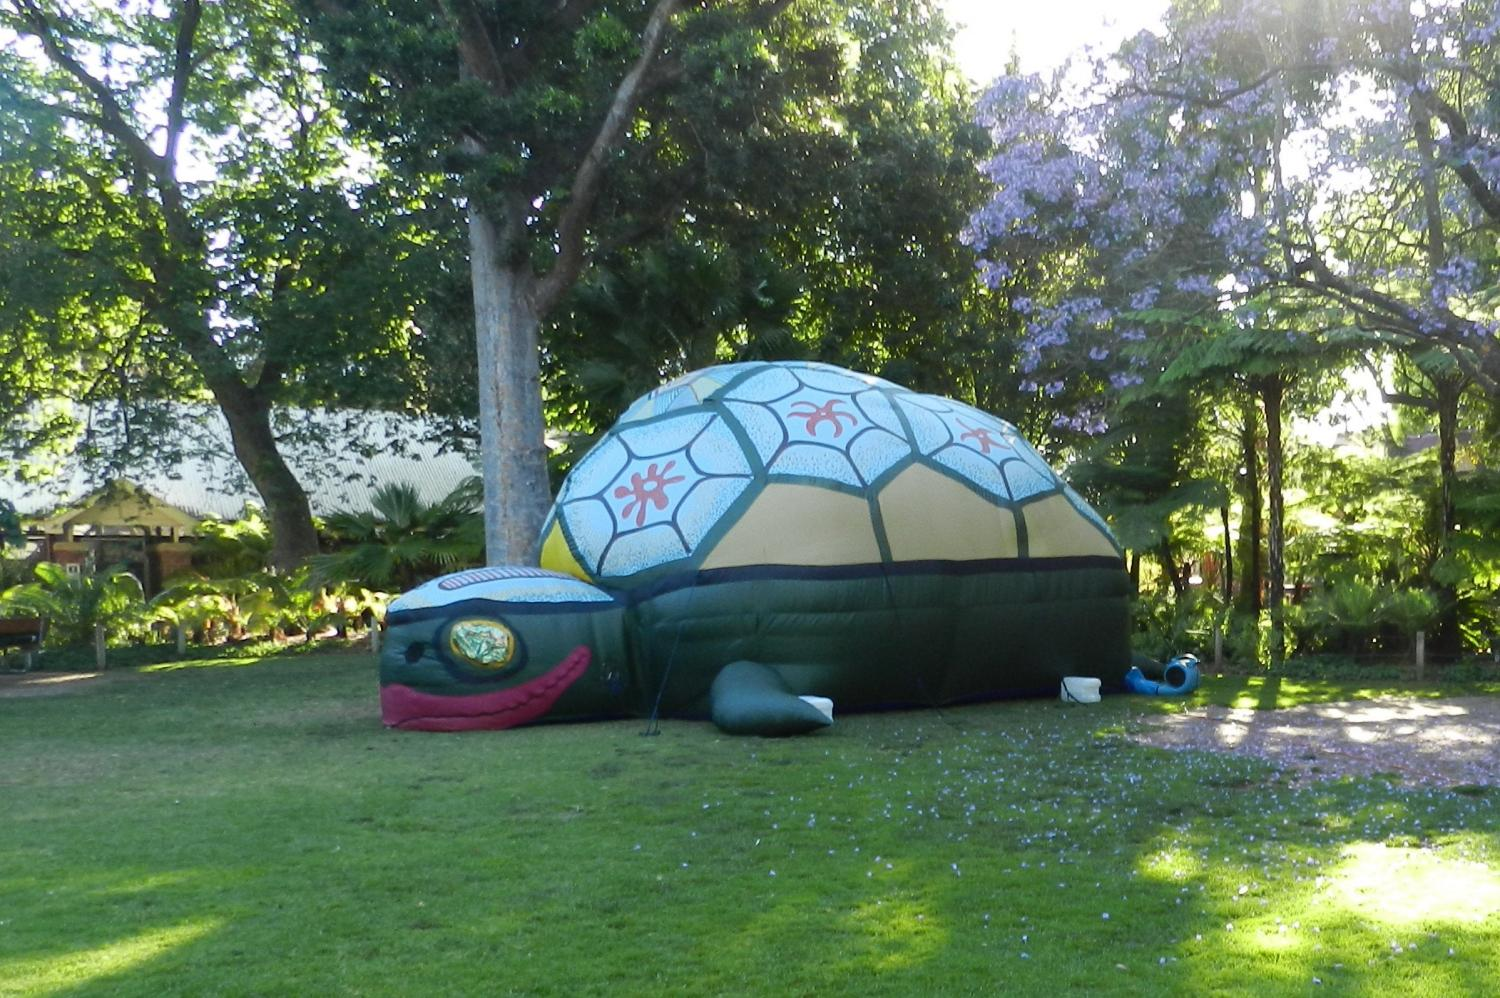 Giant inflatable turtle - Evelyn Roth